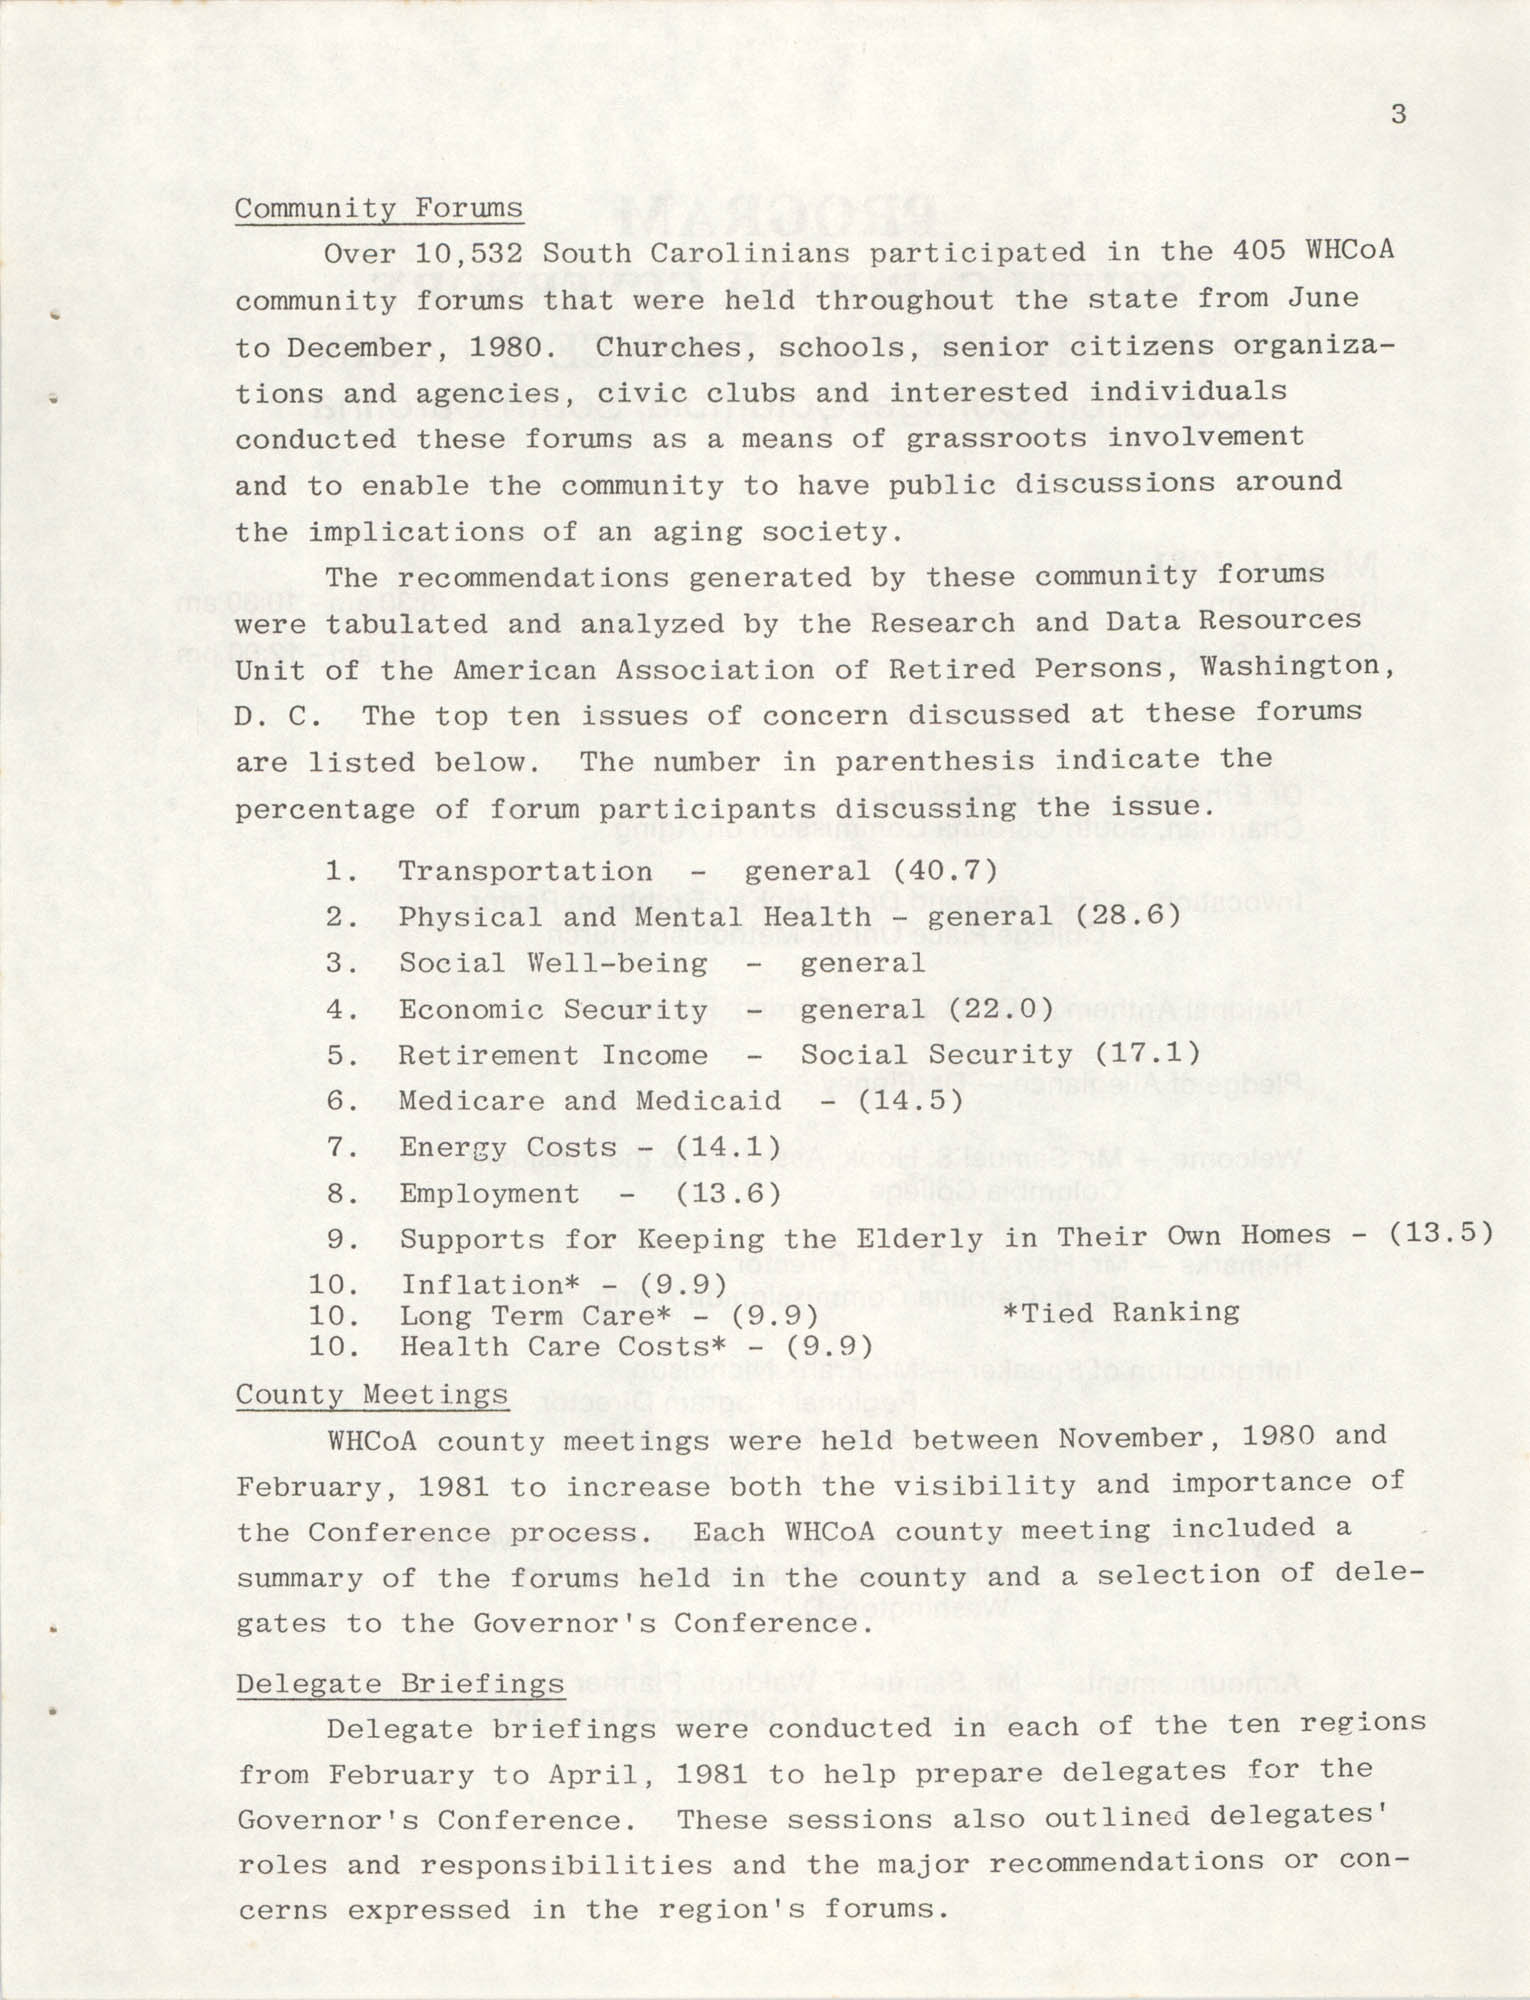 South Carolina Governor's White House Conference on Aging Proceedings, 1981, Page 3